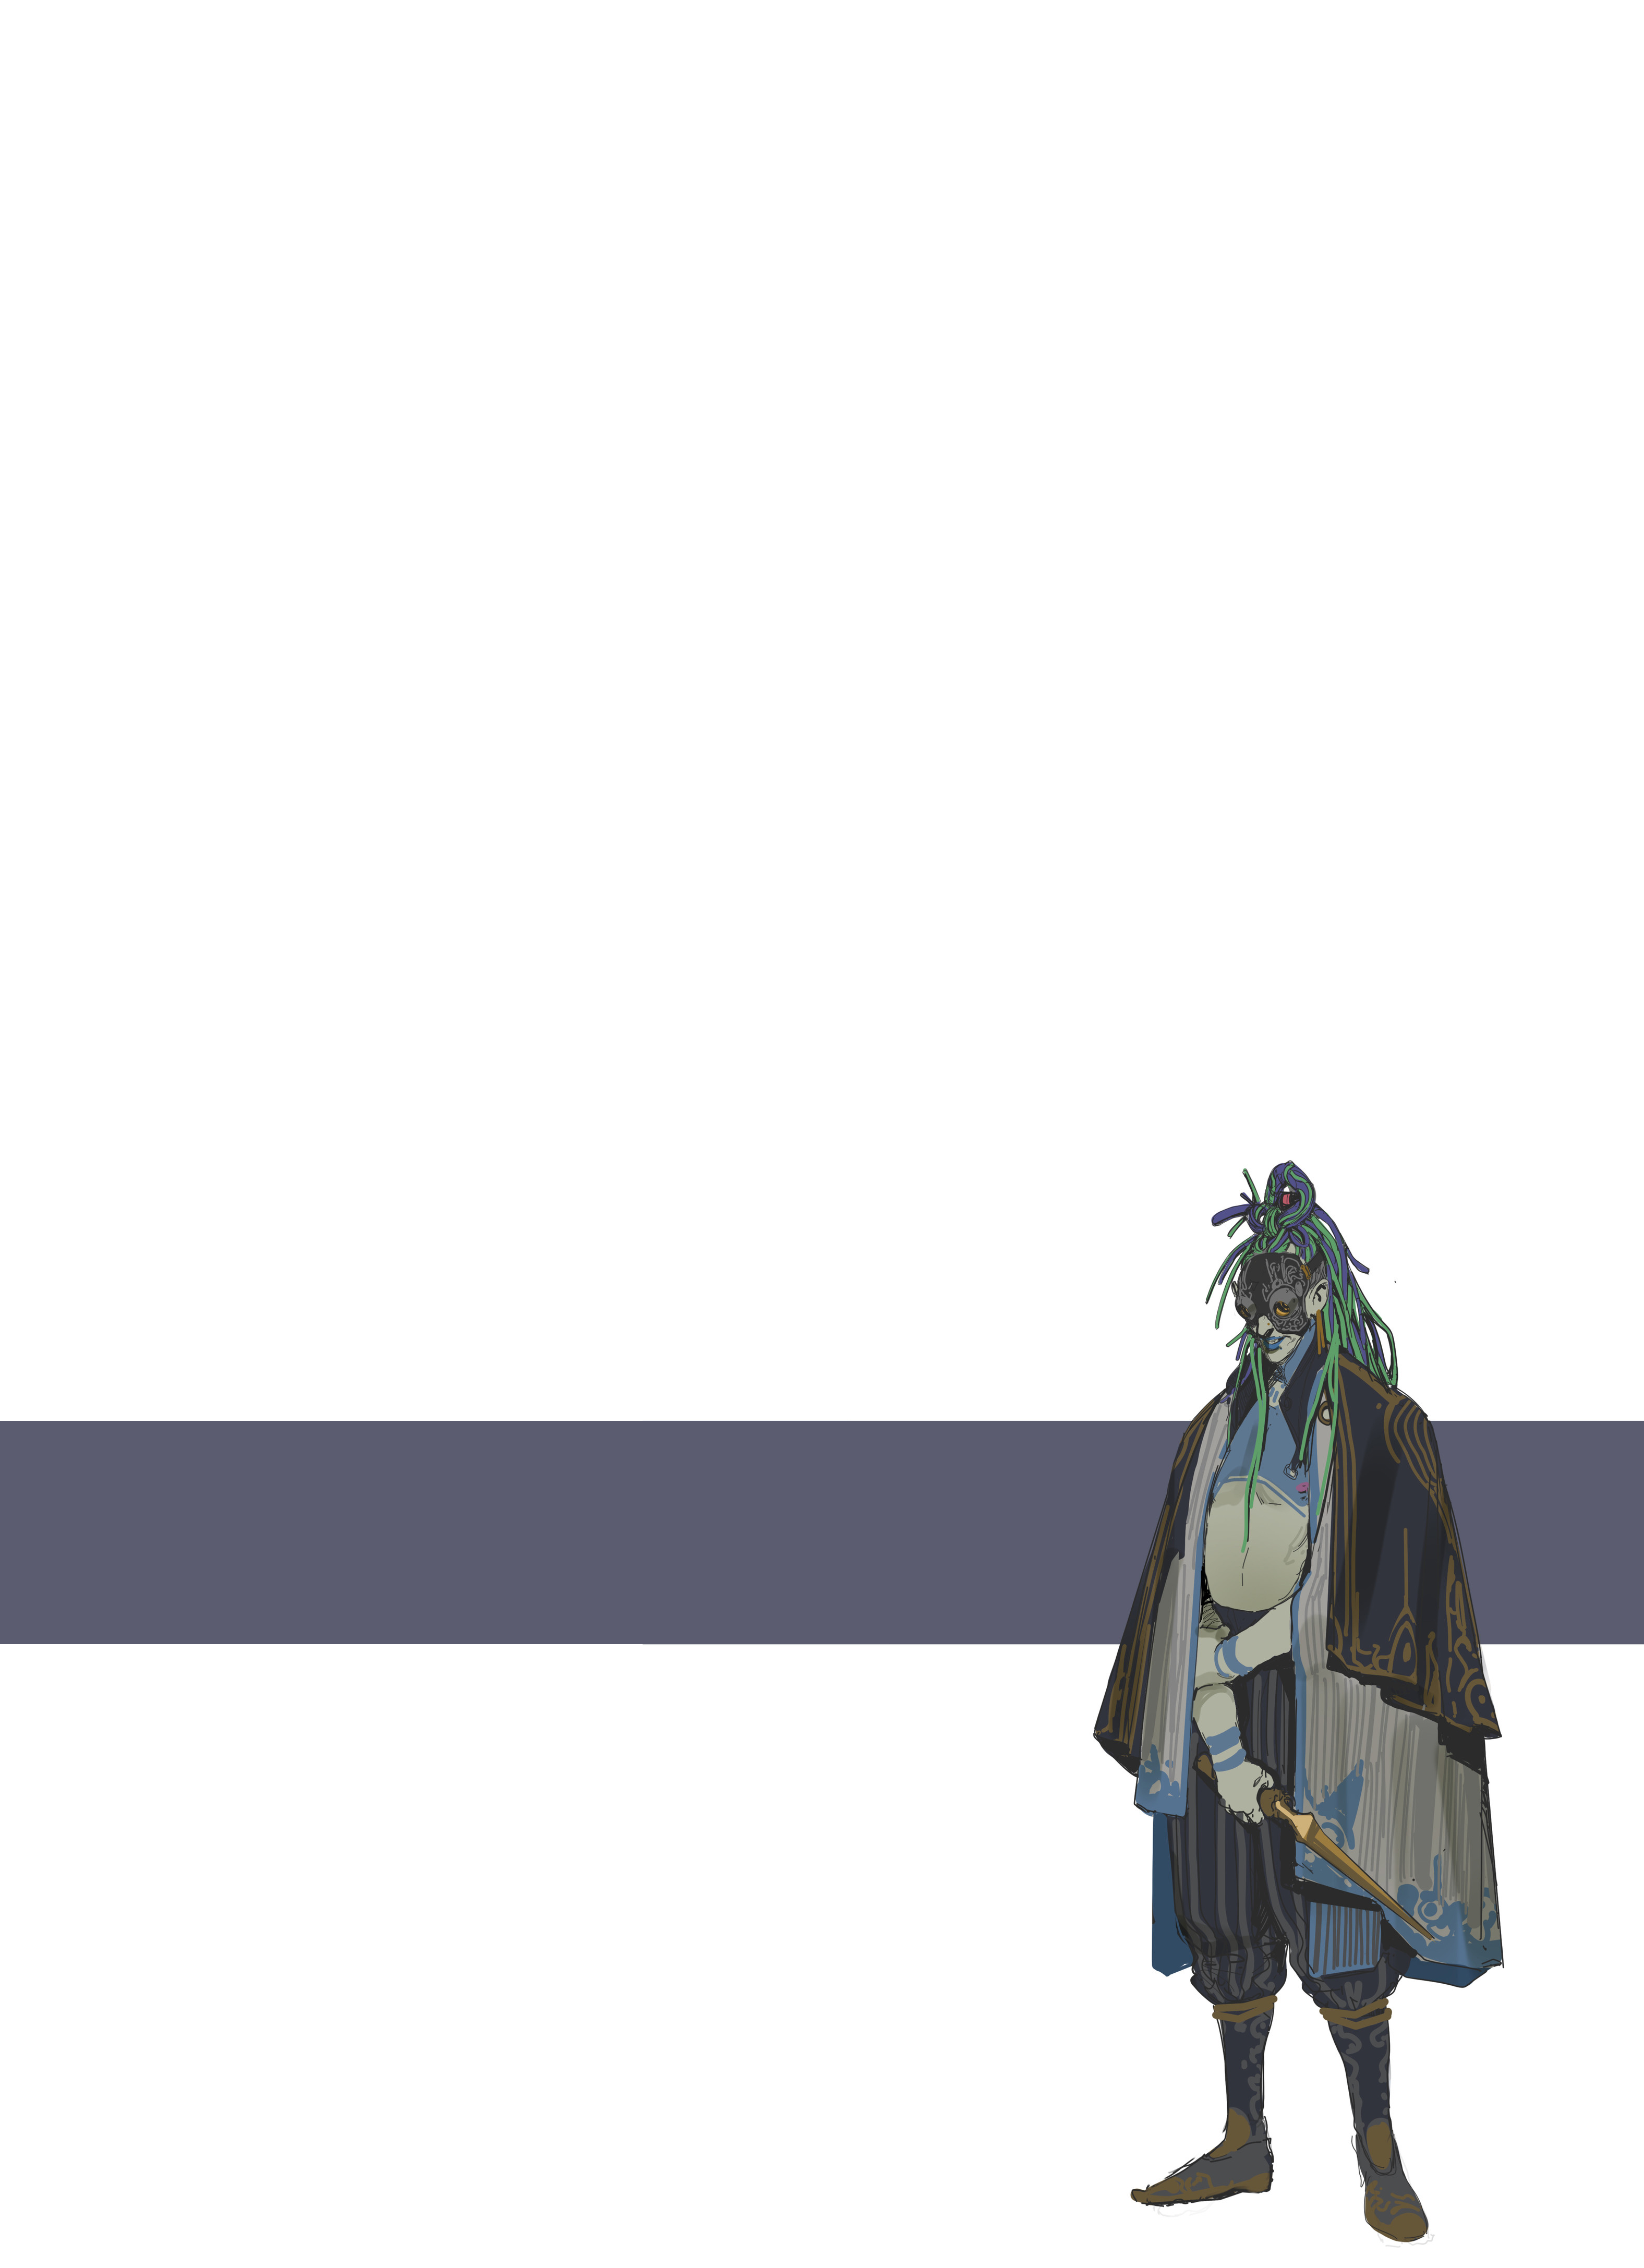 Cyberpunk 5e Witch Gm Binder If you'd like to edit, please message the admin and she'll. cyberpunk 5e witch gm binder